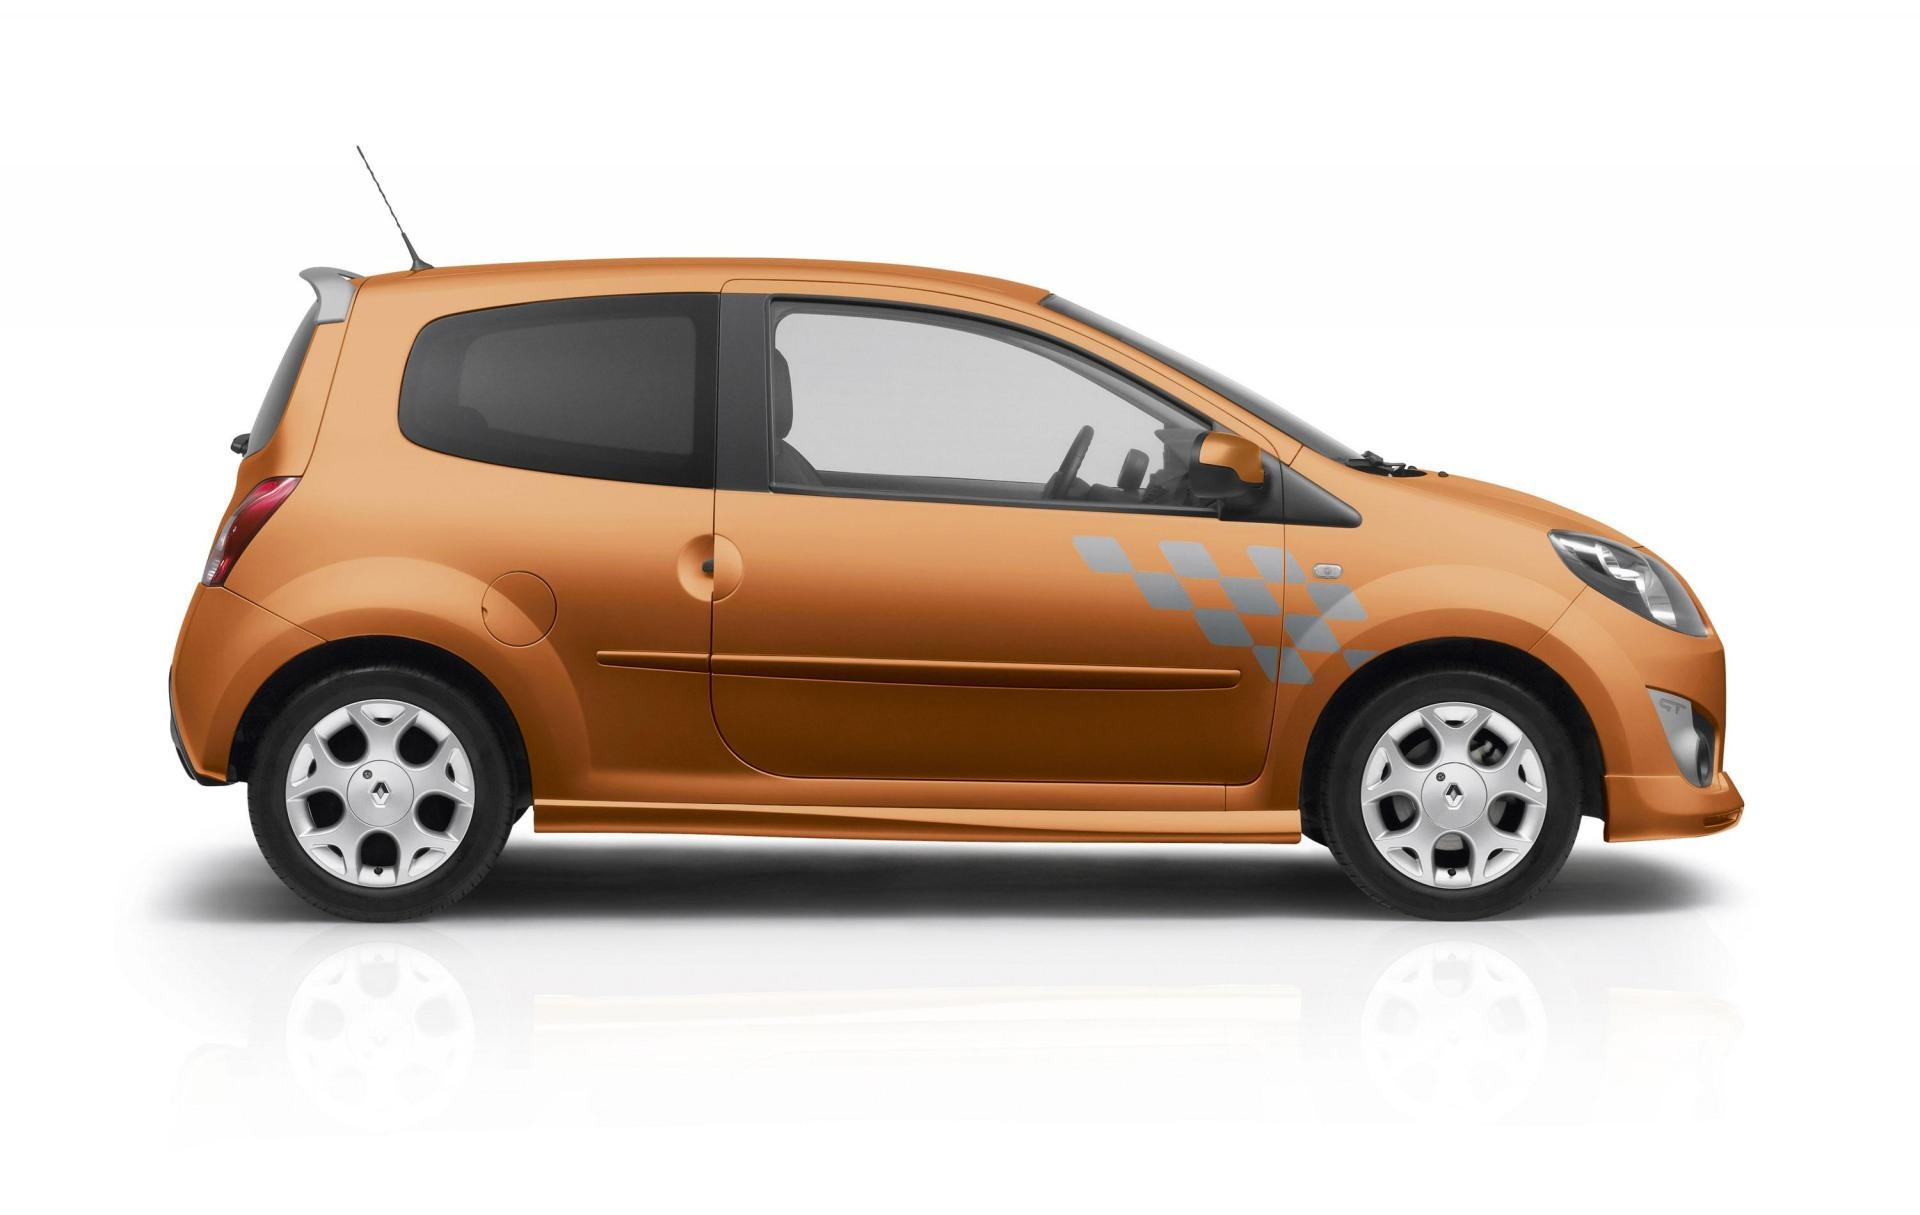 2010 Renault Twingo News And Information Conceptcarz Com